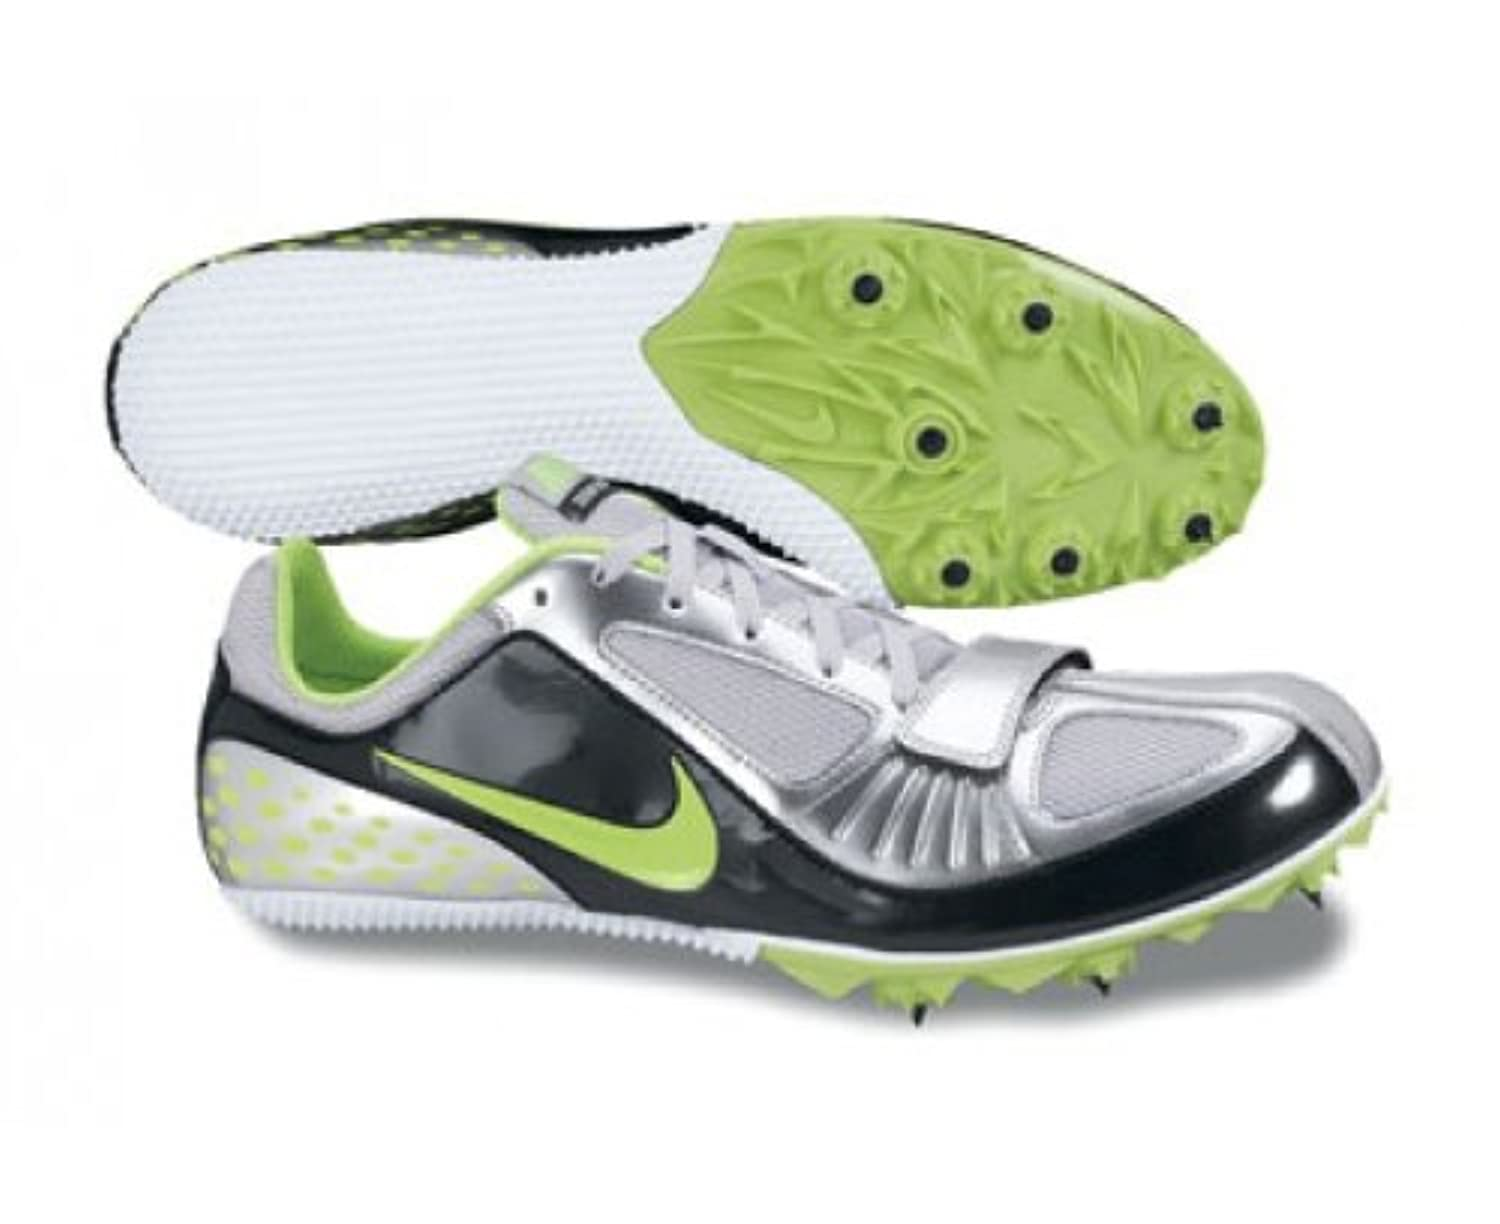 Images for Nike Rival S 5 Sprint Running Spikes - 8